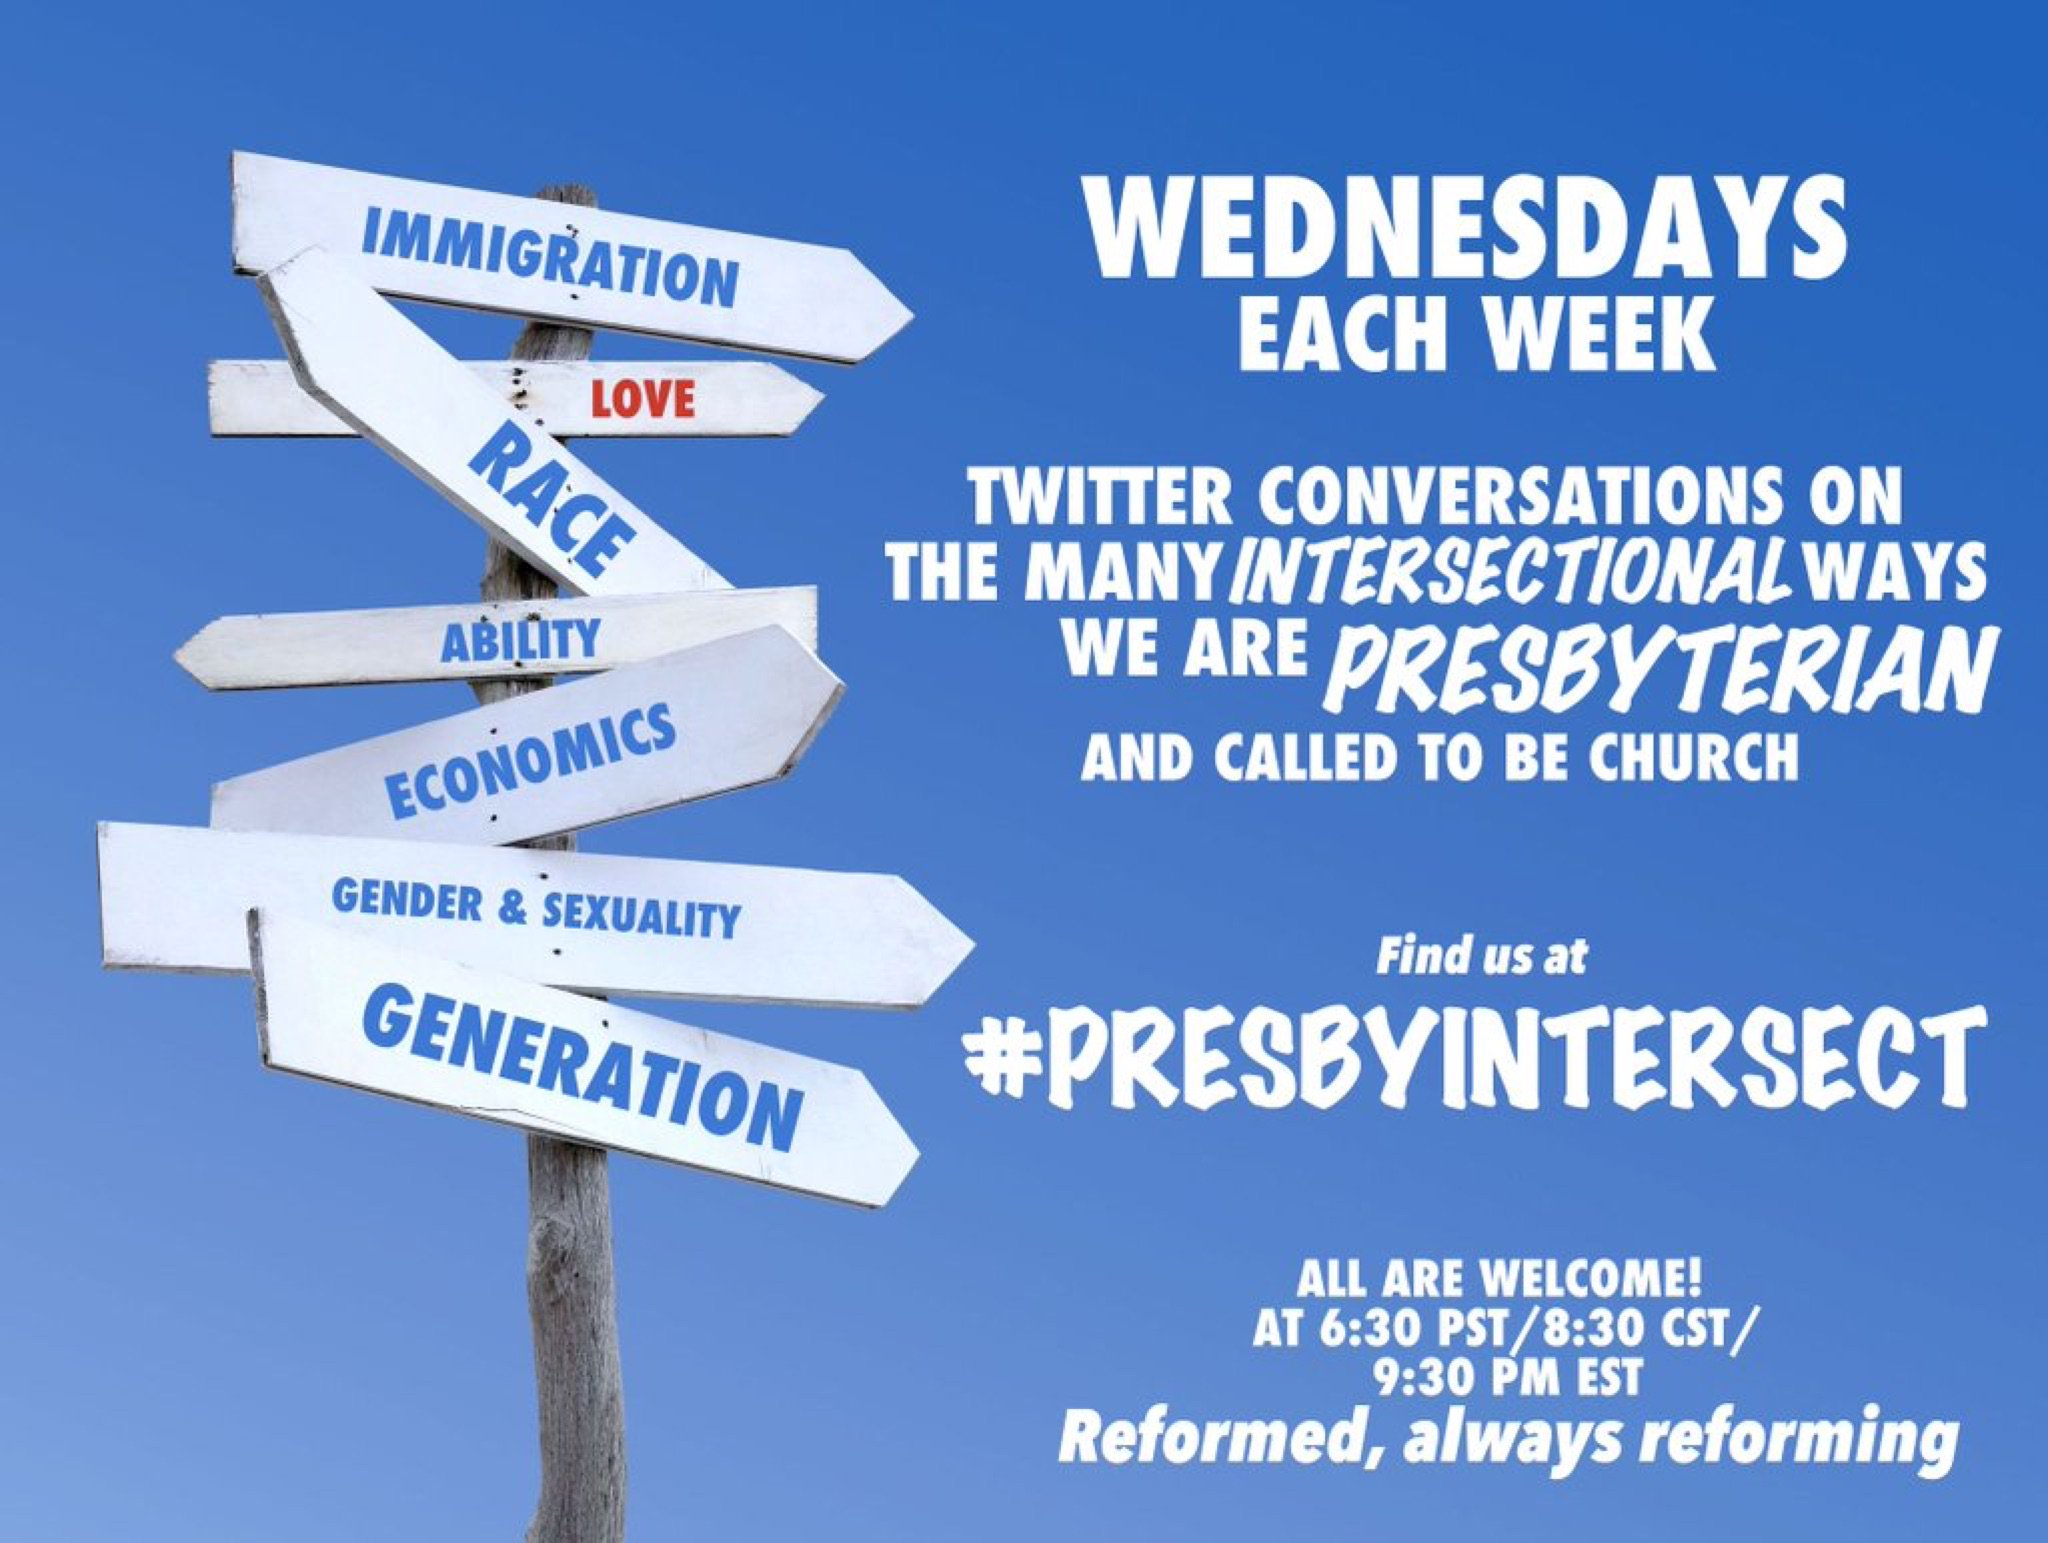 Just in - @jazzpastord will facilitate #PresbyIntersect this week! #PCUSA https://t.co/PoOQXCm6PD